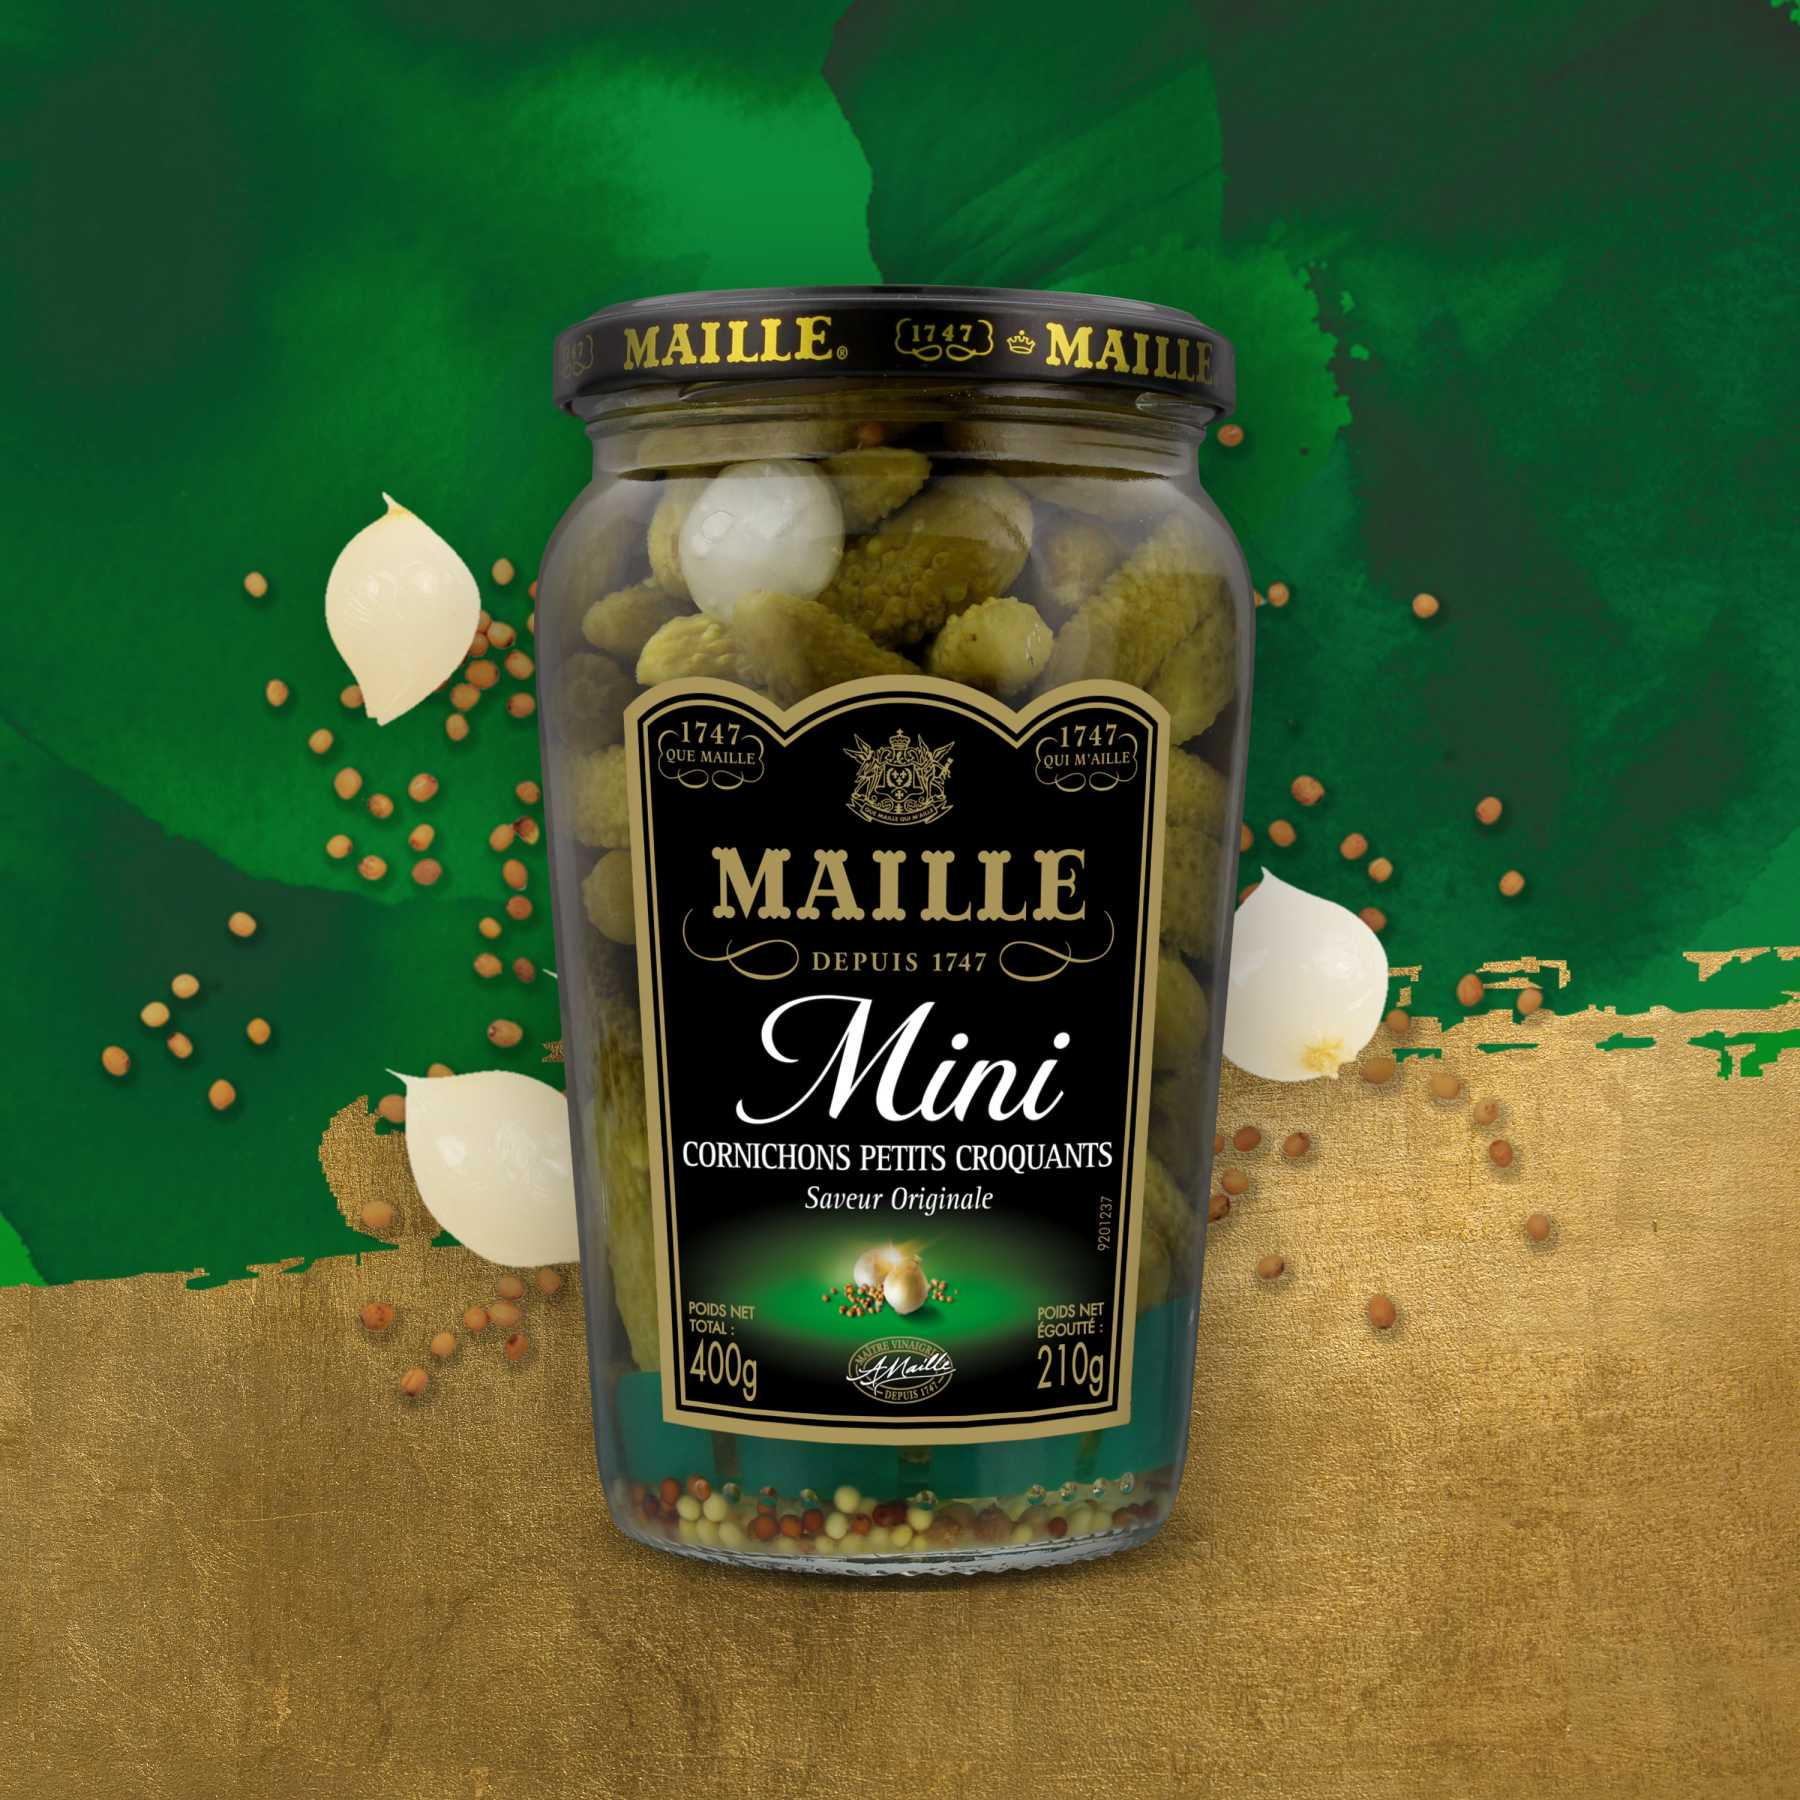 Maille - Cornichon mini l'original, 210 g, new visual